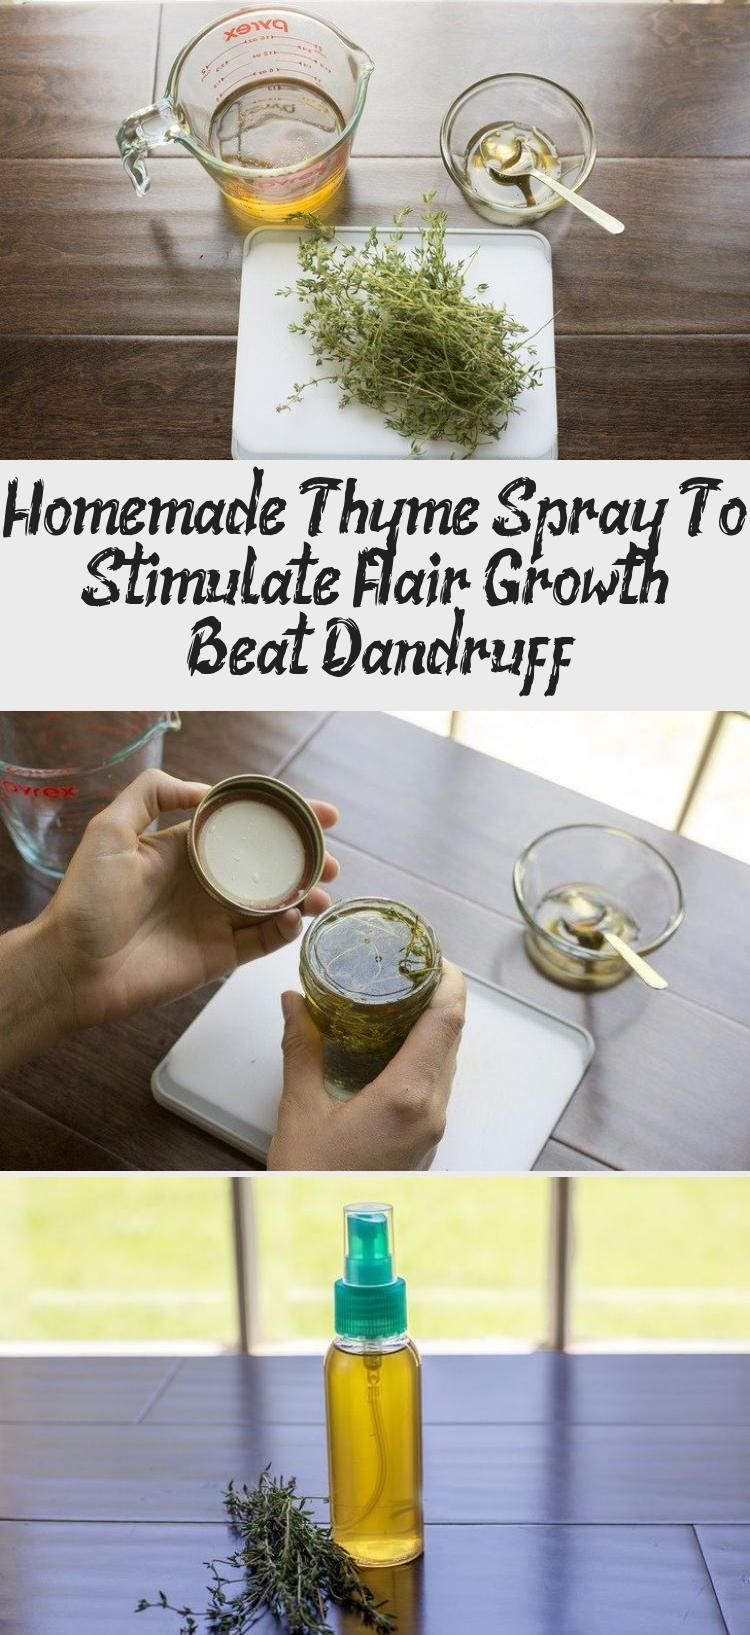 Homemade Thyme Spray To Stimulate Hair Growth & Beat Dandruff #hairgrowthStages #Babyhairgrowth #hairgrowthDoterra #Eyebrowhairgrowth #Newhairgrowth #fasterhairgrowth